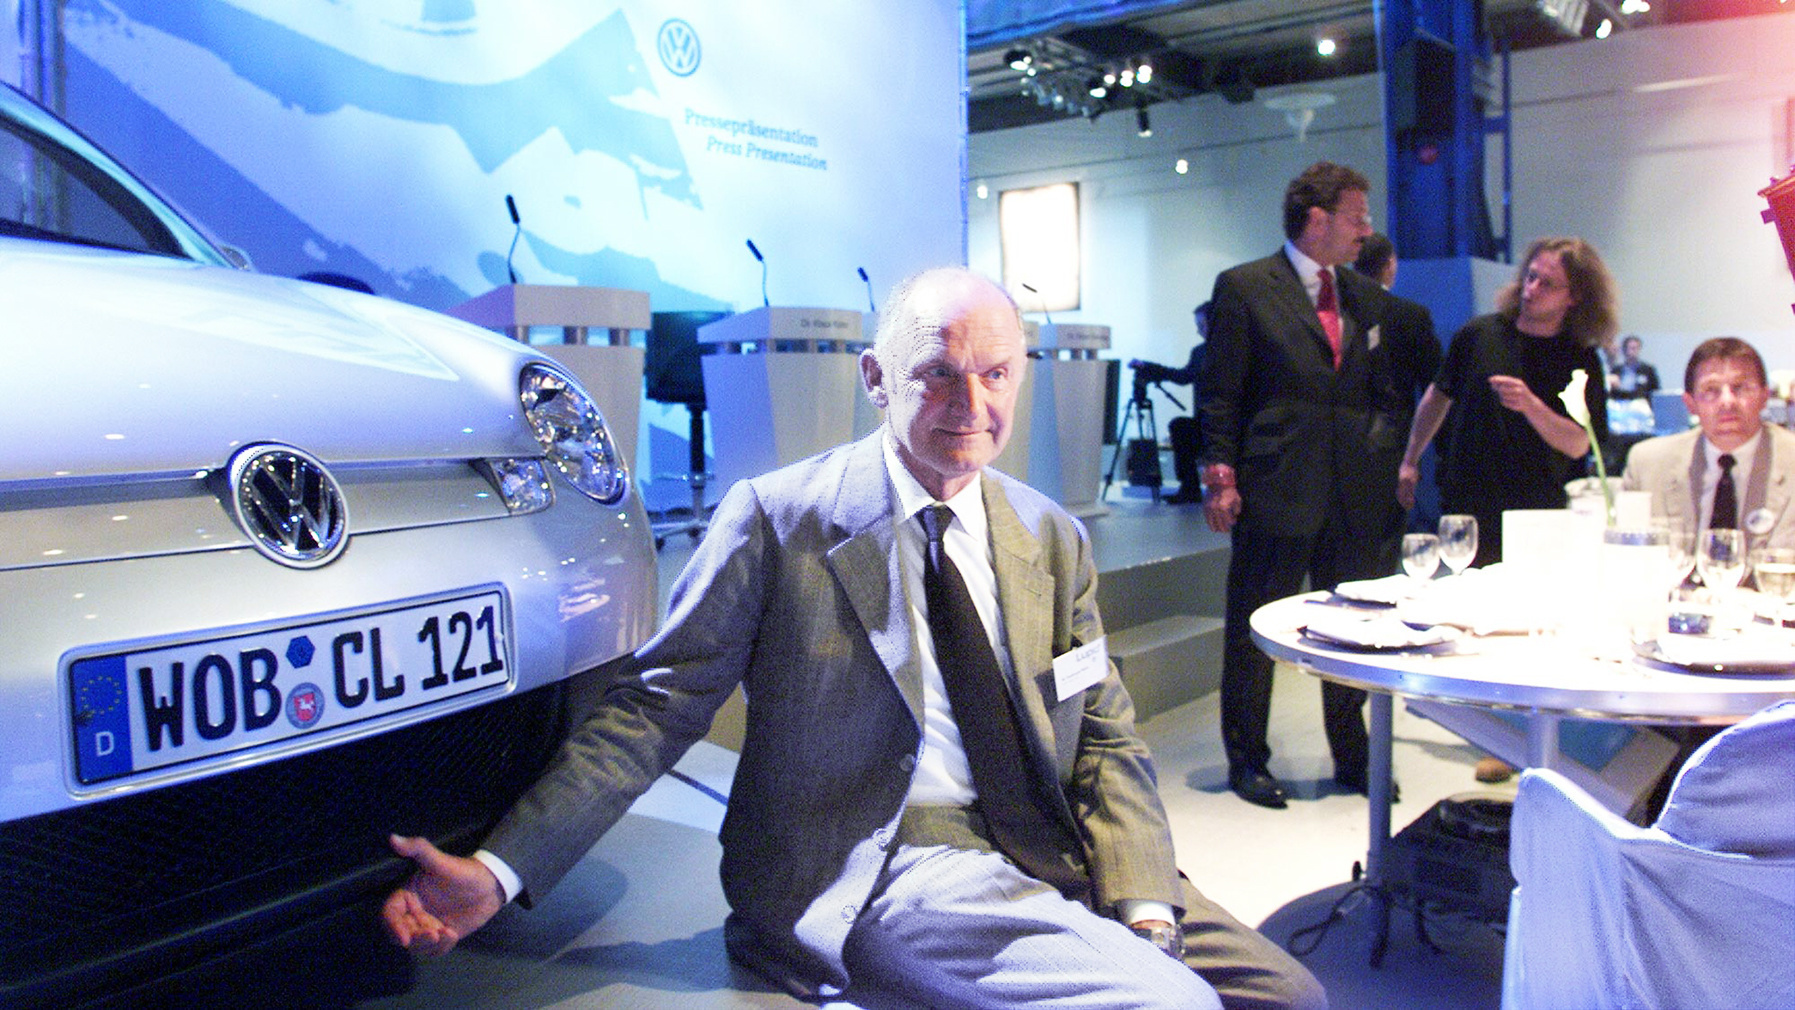 In 1999 Ferdinand Piëch presented the Lupo 3L TDI in Gothenburg, Sweden. The car made a mark as the world's first production car with a fuel consumption of less than three litres.